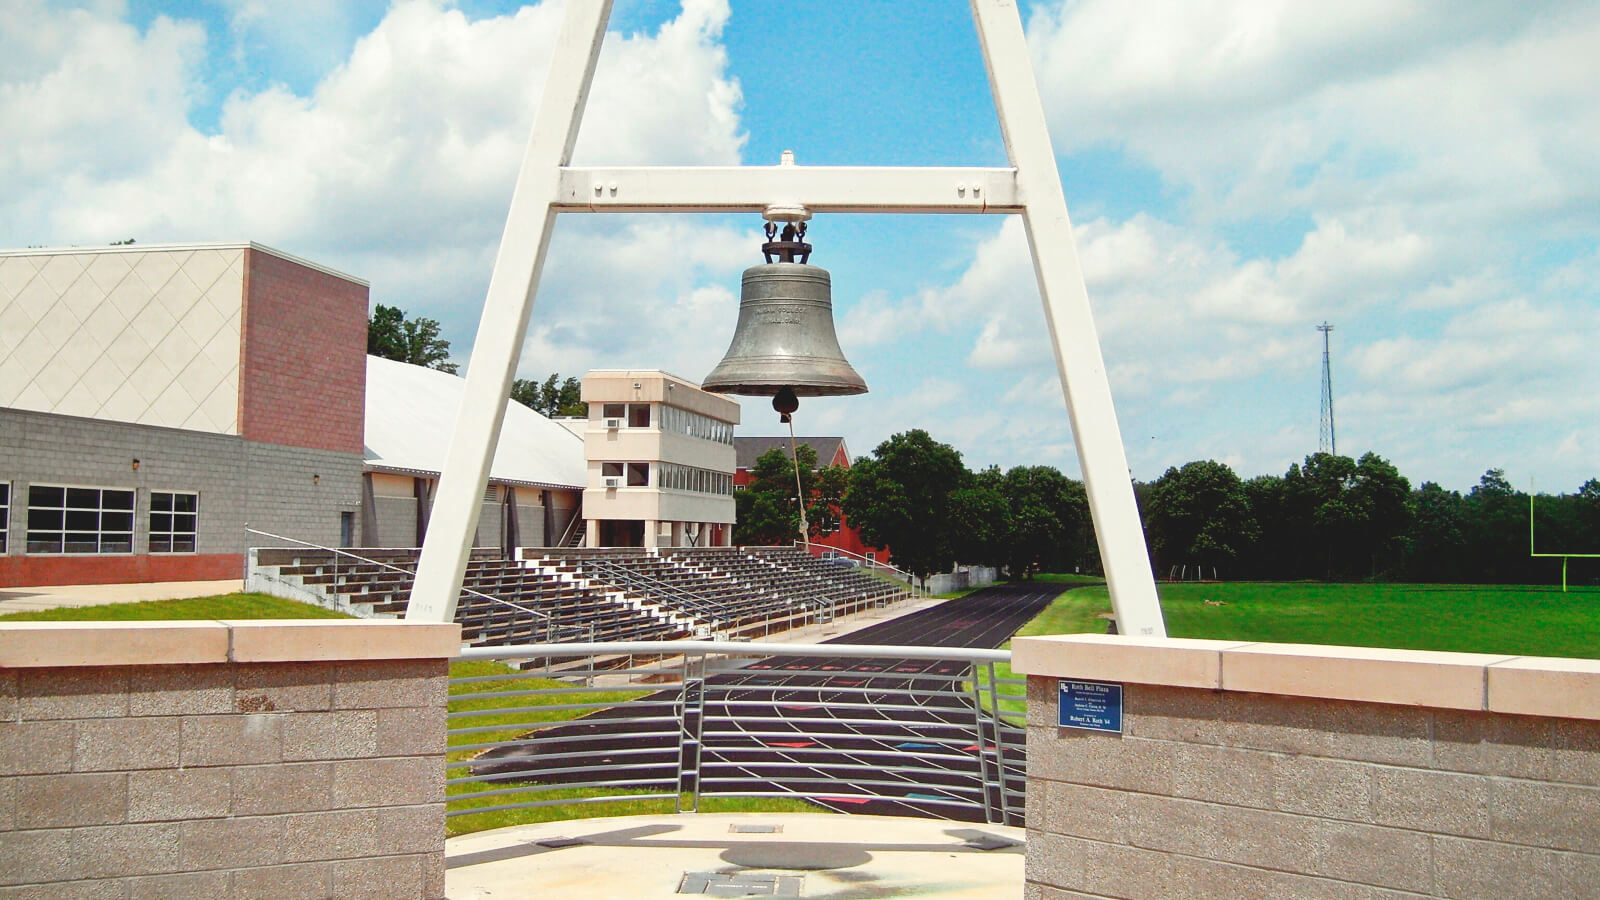 An image of a large bell in a stadium at Hiram College